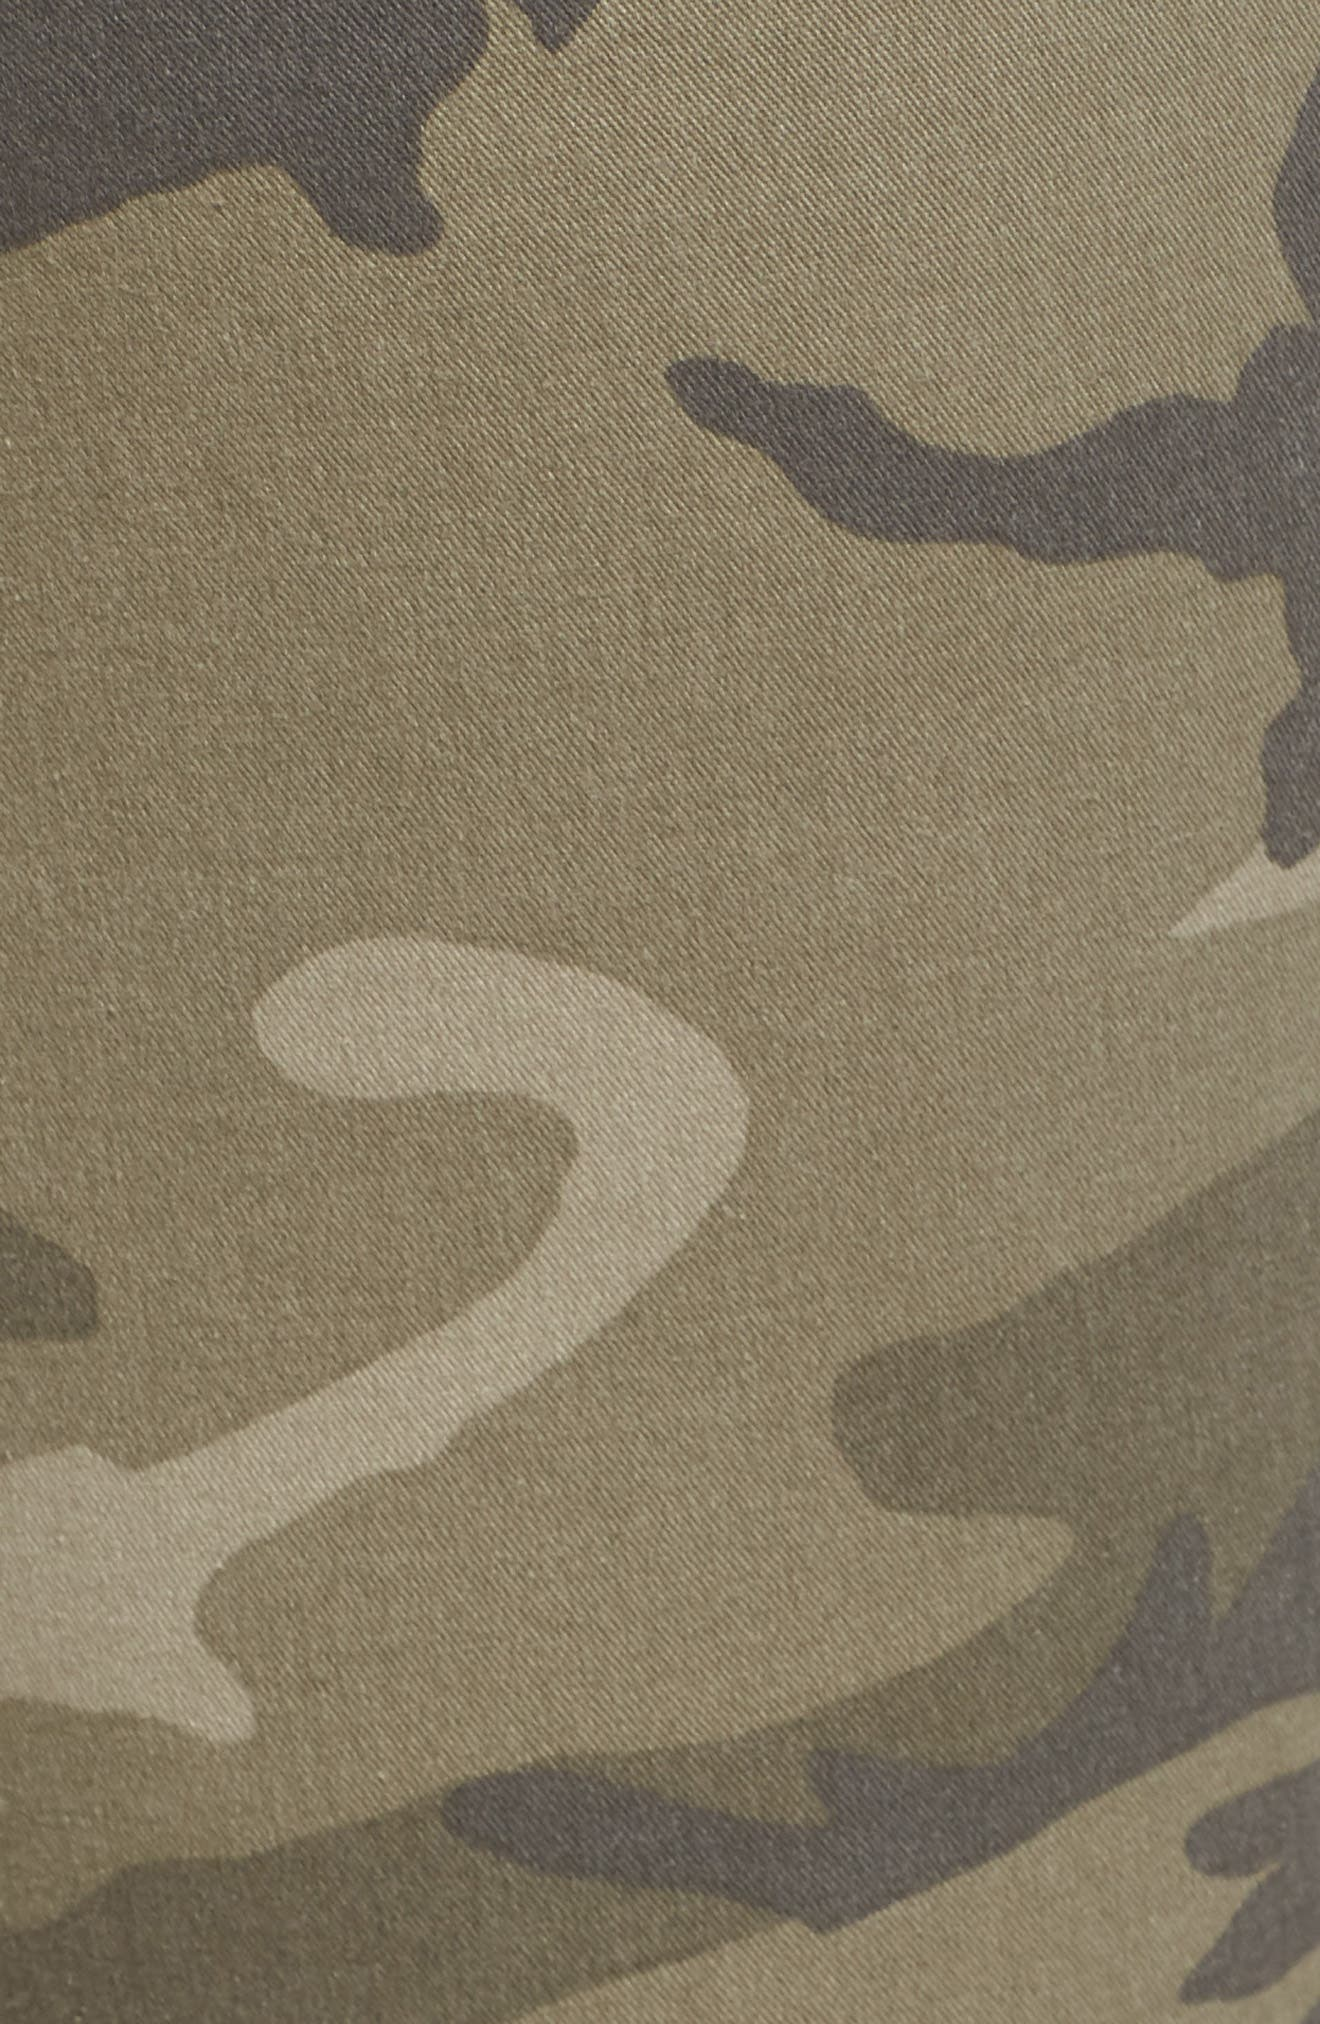 Camo Denim Pants,                             Alternate thumbnail 5, color,                             218